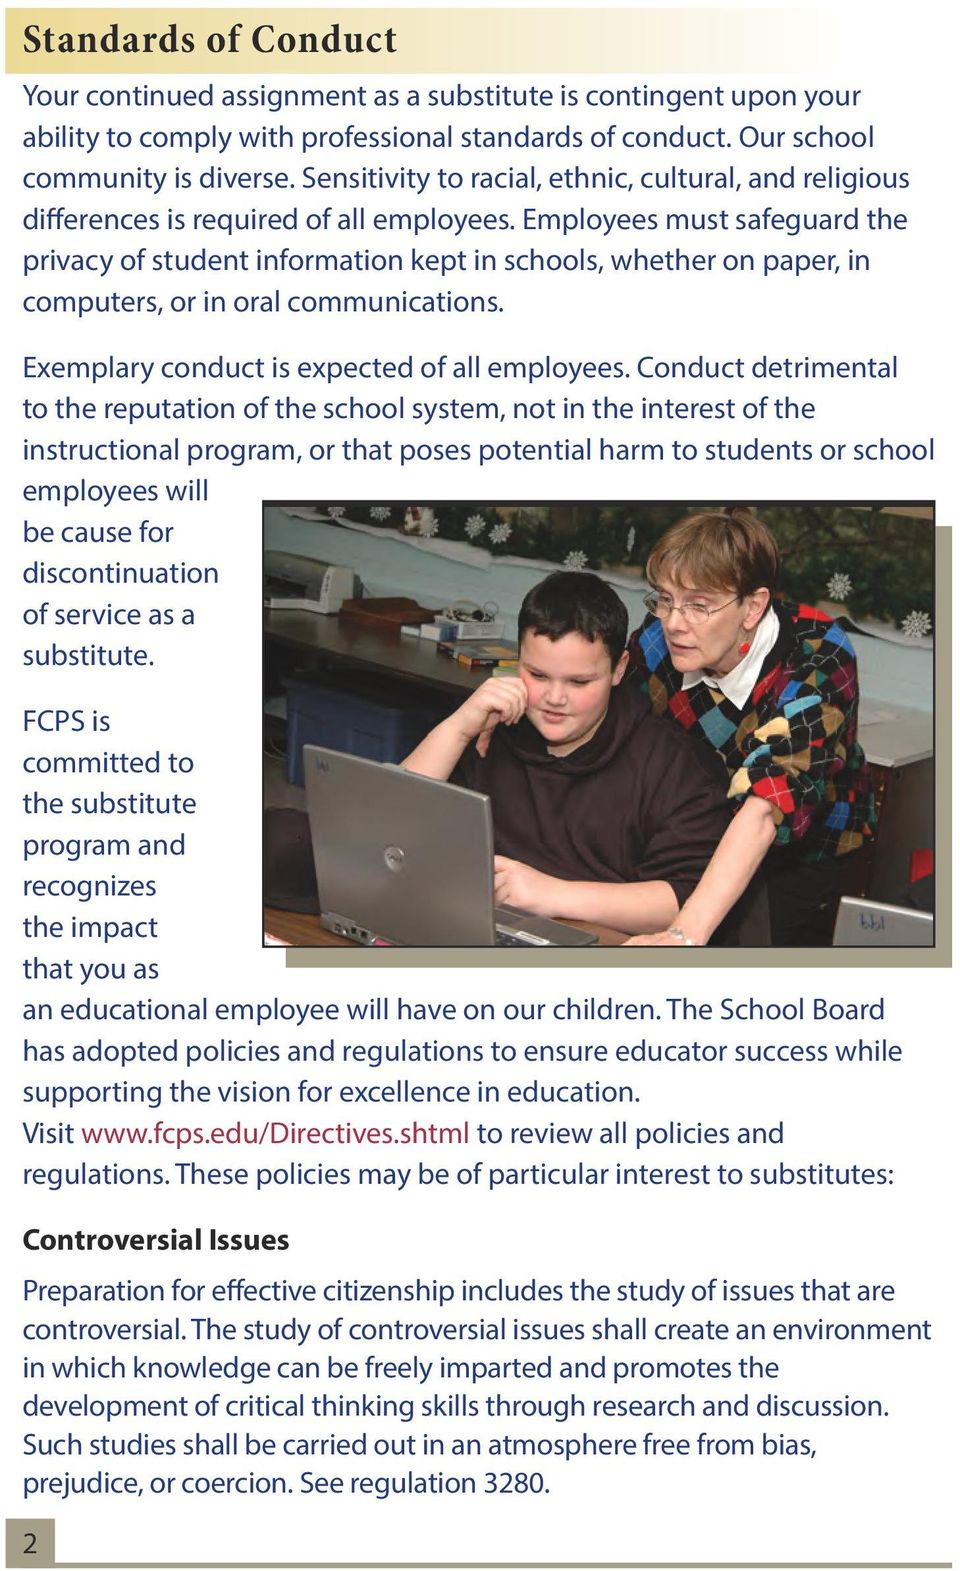 Employees must safeguard the privacy of student information kept in schools, whether on paper, in computers, or in oral communications. Exemplary conduct is expected of all employees.